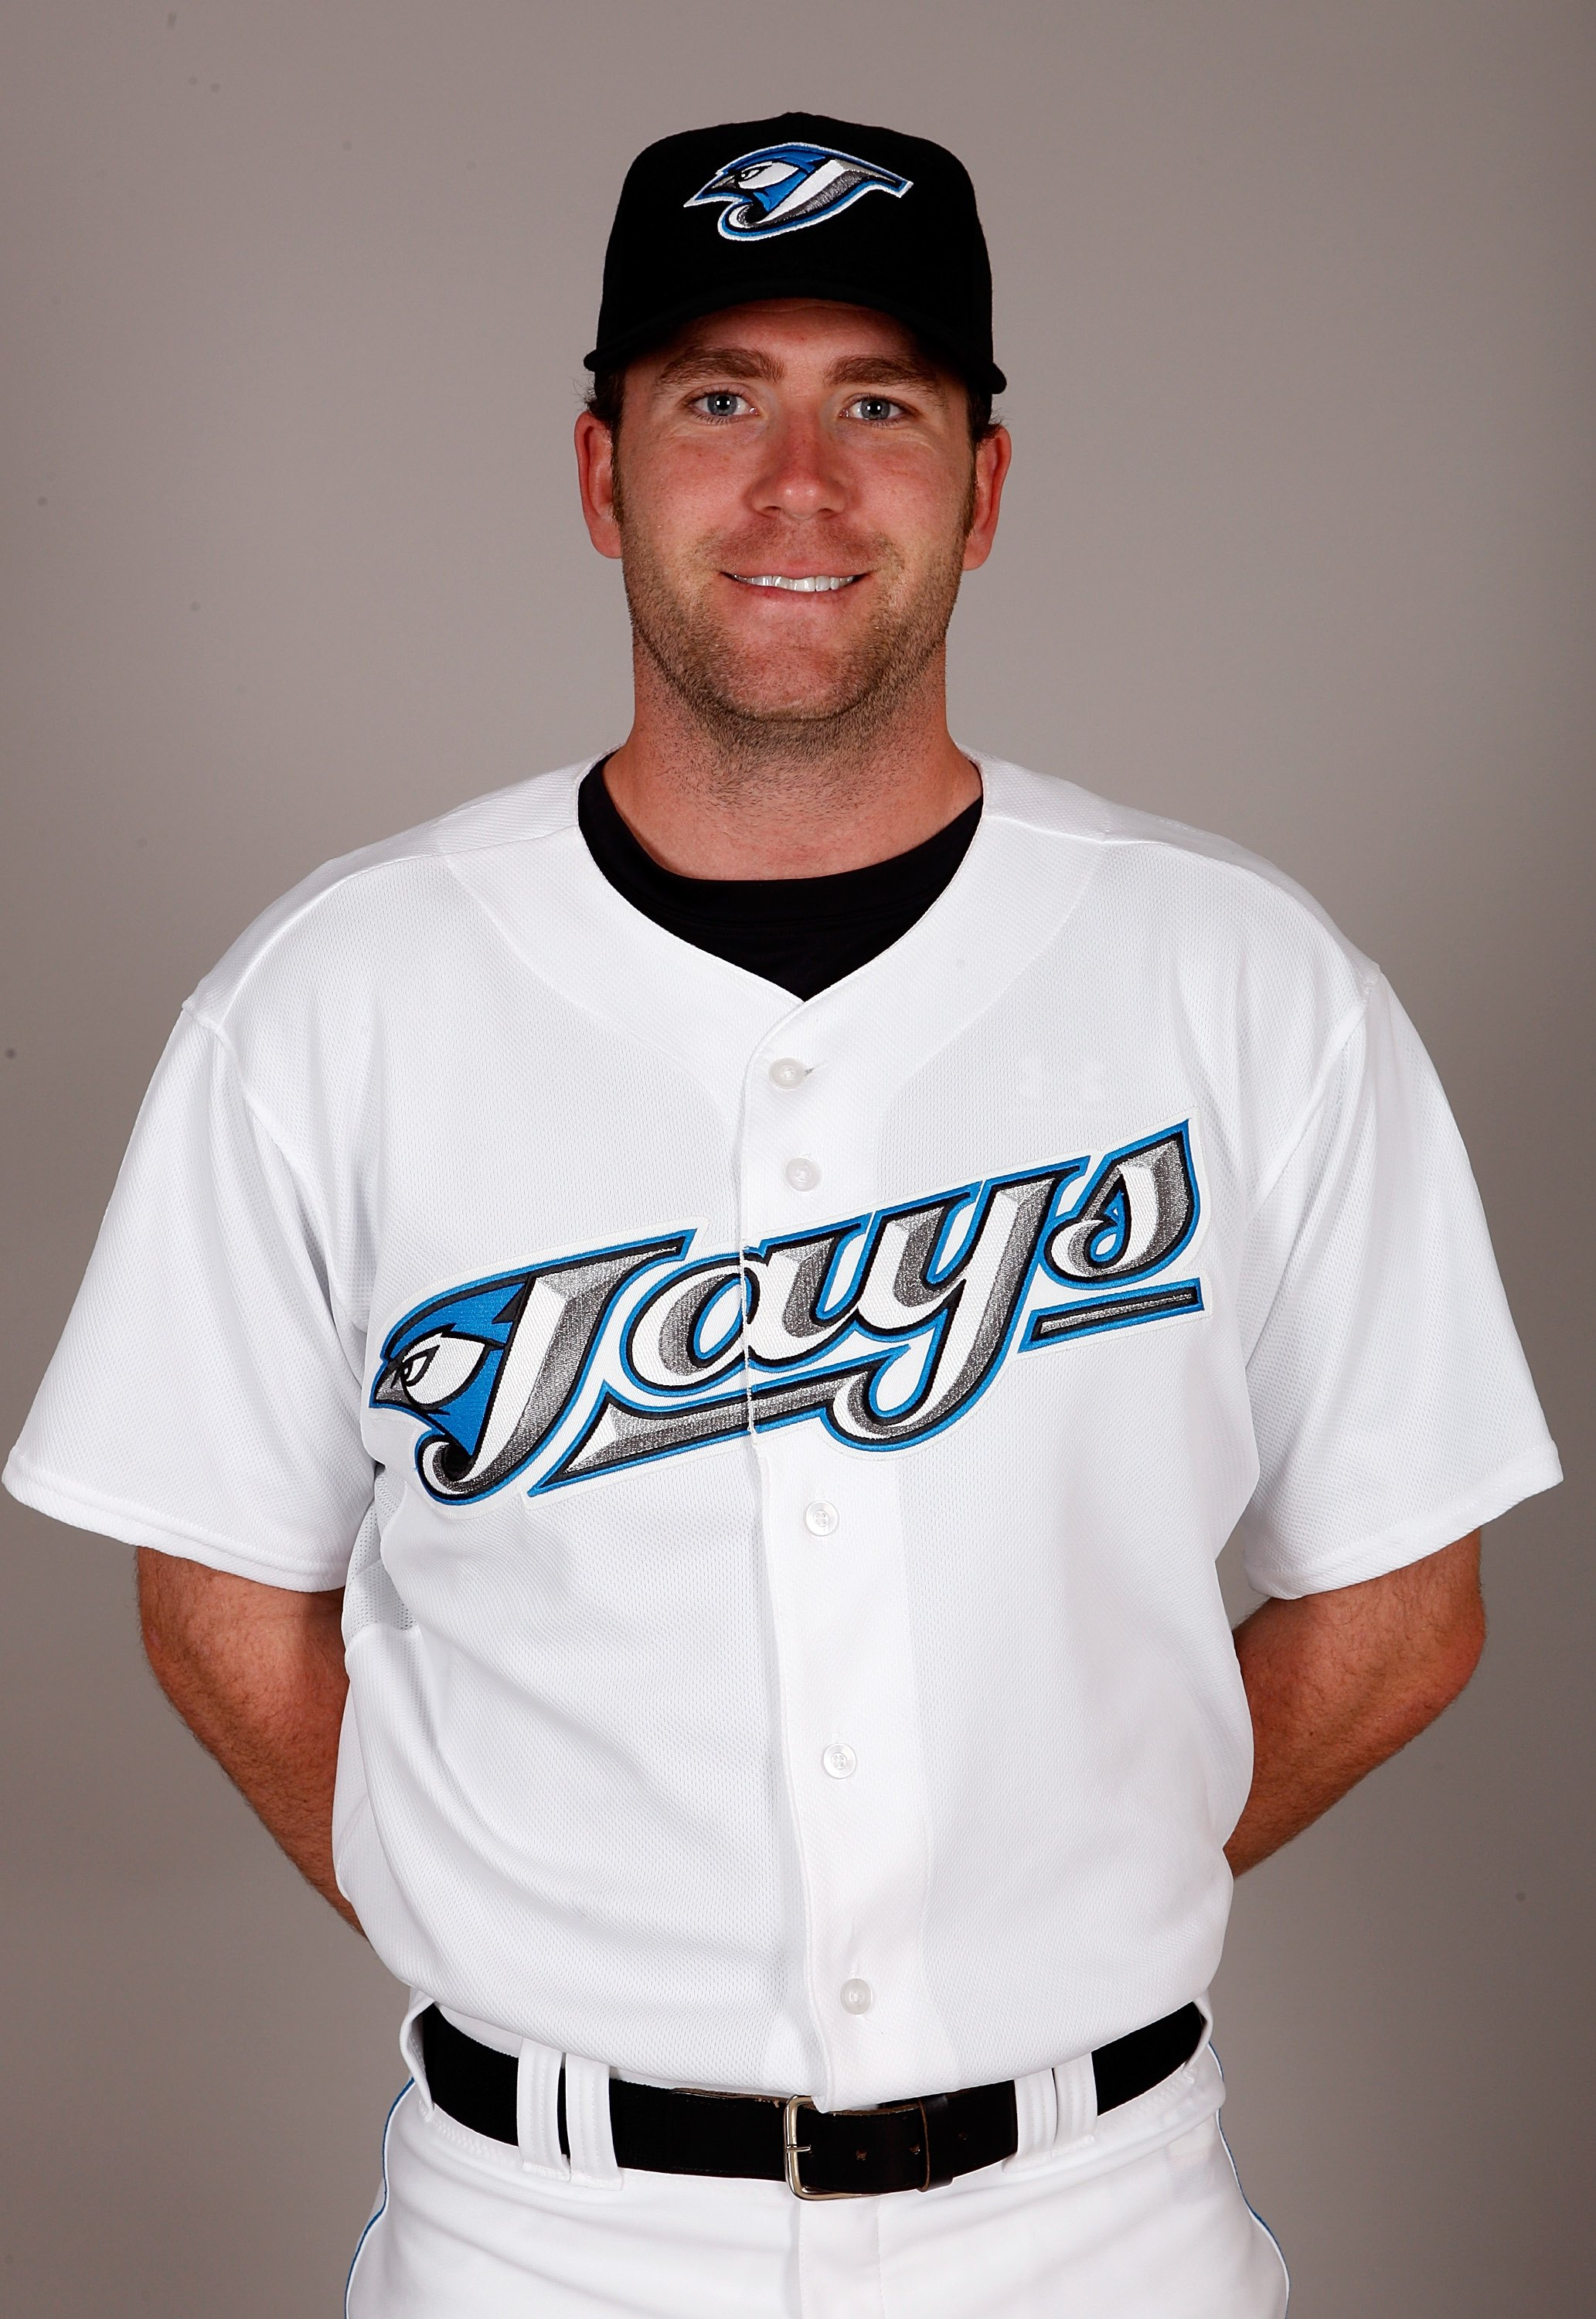 DUNEDIN, FL - FEBRUARY 23:  Casey Janssen #44 of the Toronto Blue Jays poses during photo day at the Bobby Mattick Training Center at Englebert Complex on February 23, 2009 in Dunedin, Florida.  (Photo by J. Meric/Getty Images)